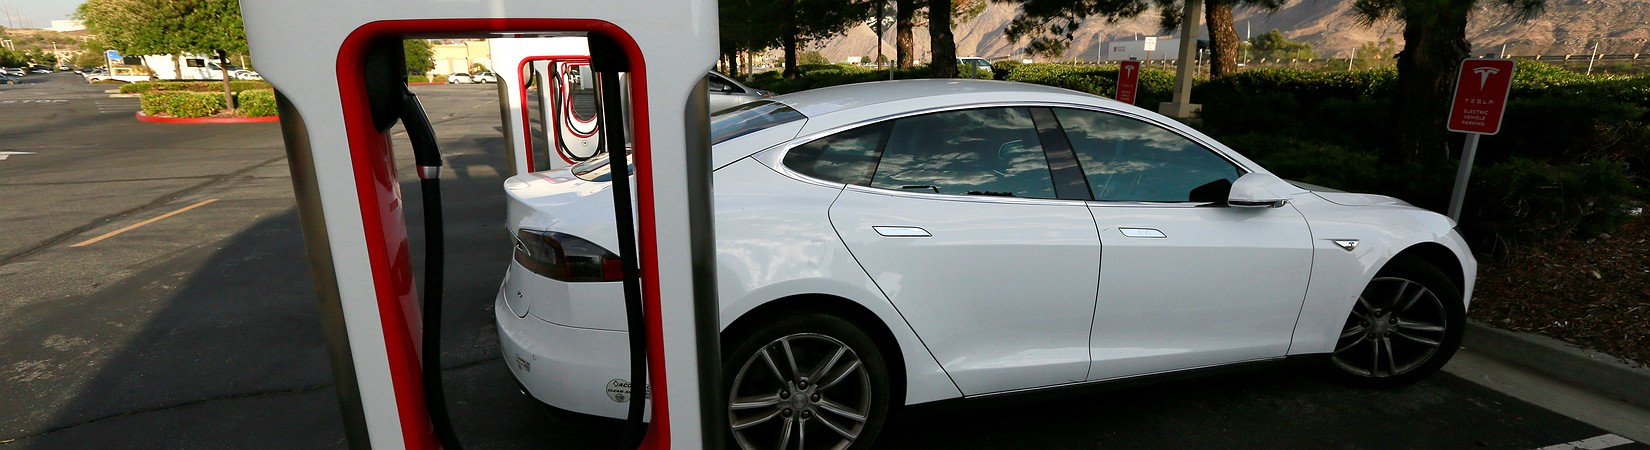 Tesla briefly pipped GM to become the biggest car maker in the US